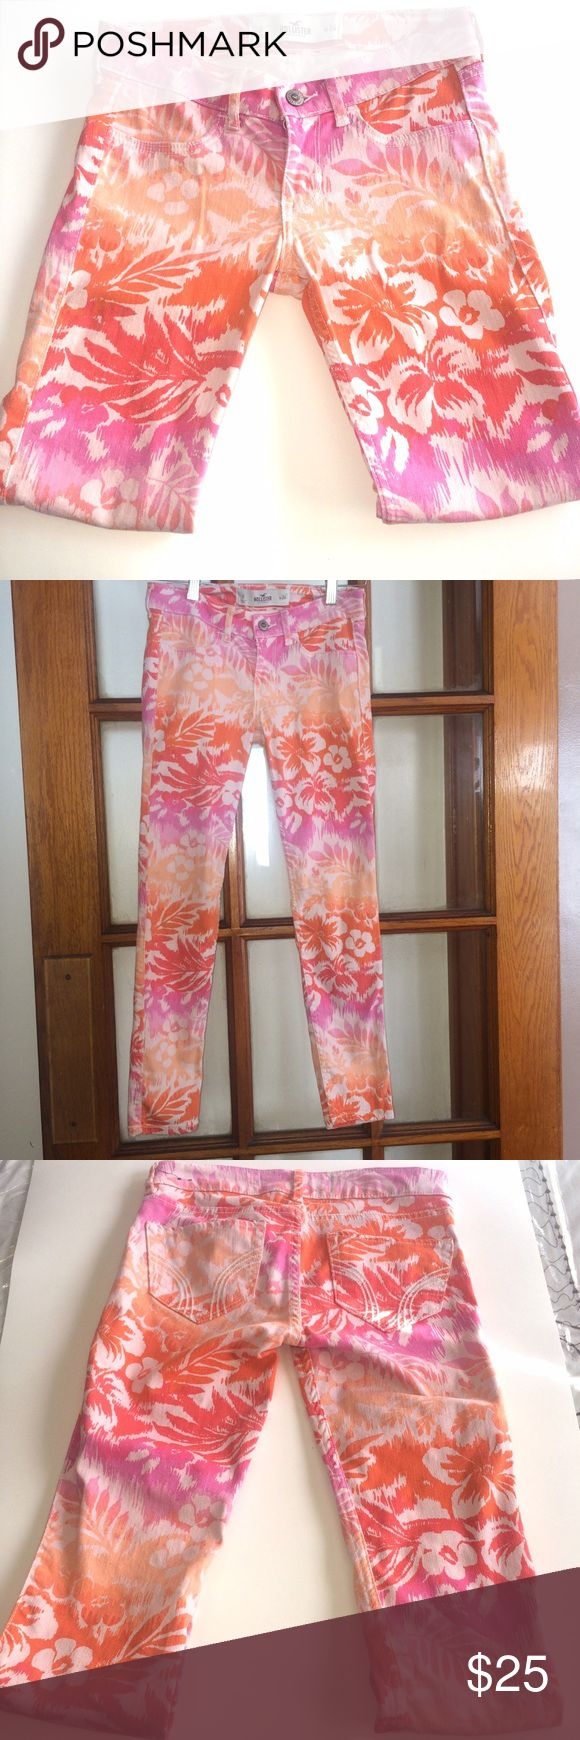 Hollister Floral Betty Skinny Jeans 👖 EUC Hollister Bettys Super Skinny Pink Floral Orange Ankle Jeans  Women's Size 0/ 24 inch waist.   Colorful all-over floral print, iconic back pocket stitching, Imported 98% cotton / 2% spandex Hollister Jeans Skinny